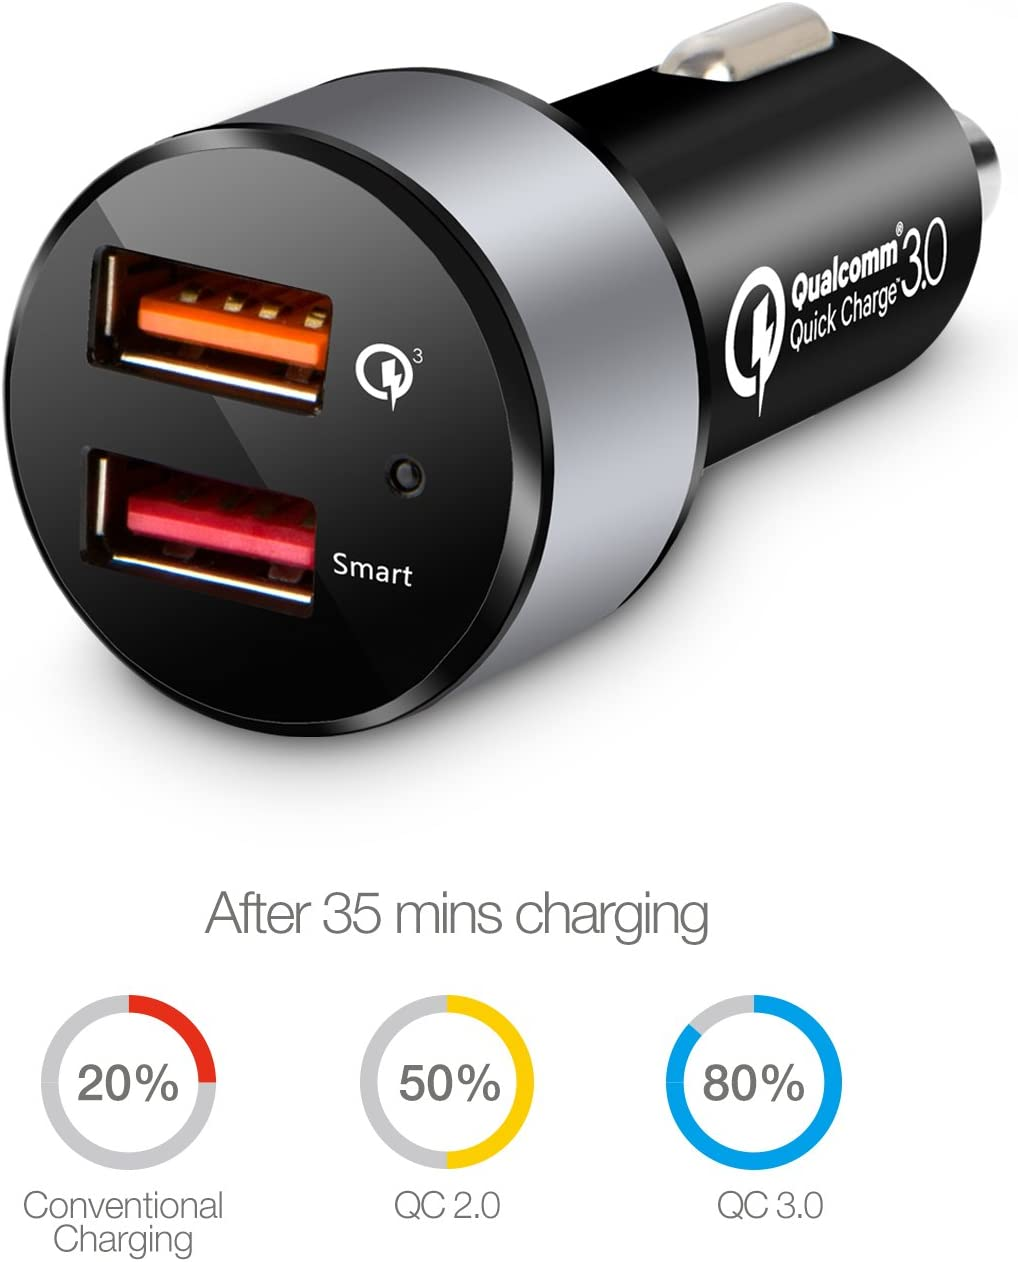 iKits 30W Dual USB Car Phone Charge QC3.0 USB for Galaxy S9+//S9//S8+//S8 LG Quick Charge 3.0 Car Charger 5V//2.4A Smart IC for iPhone,iPad Pro//Air//Mini Moto G6 Tablet /& More+ 4 ft Micro USB Cable